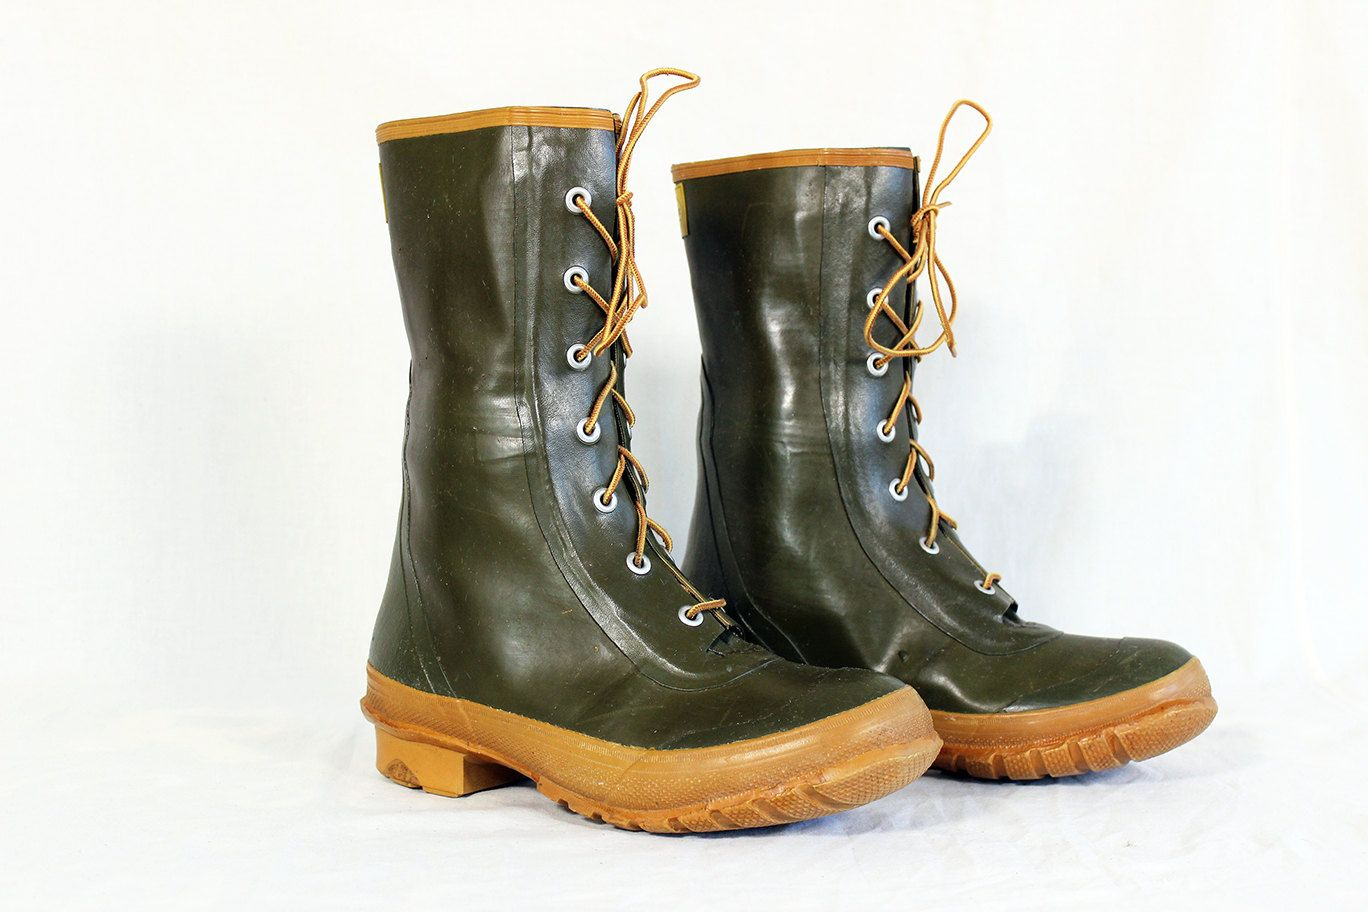 63fe2f531b48 Vintage VTG VG 1970 s 70 s Converse Rubber Company ThermoBoot Tall Rubber  Winter Boots Guaranteed to 20 Below Unisex Men s 7 B USA by foxandfawns on  Etsy